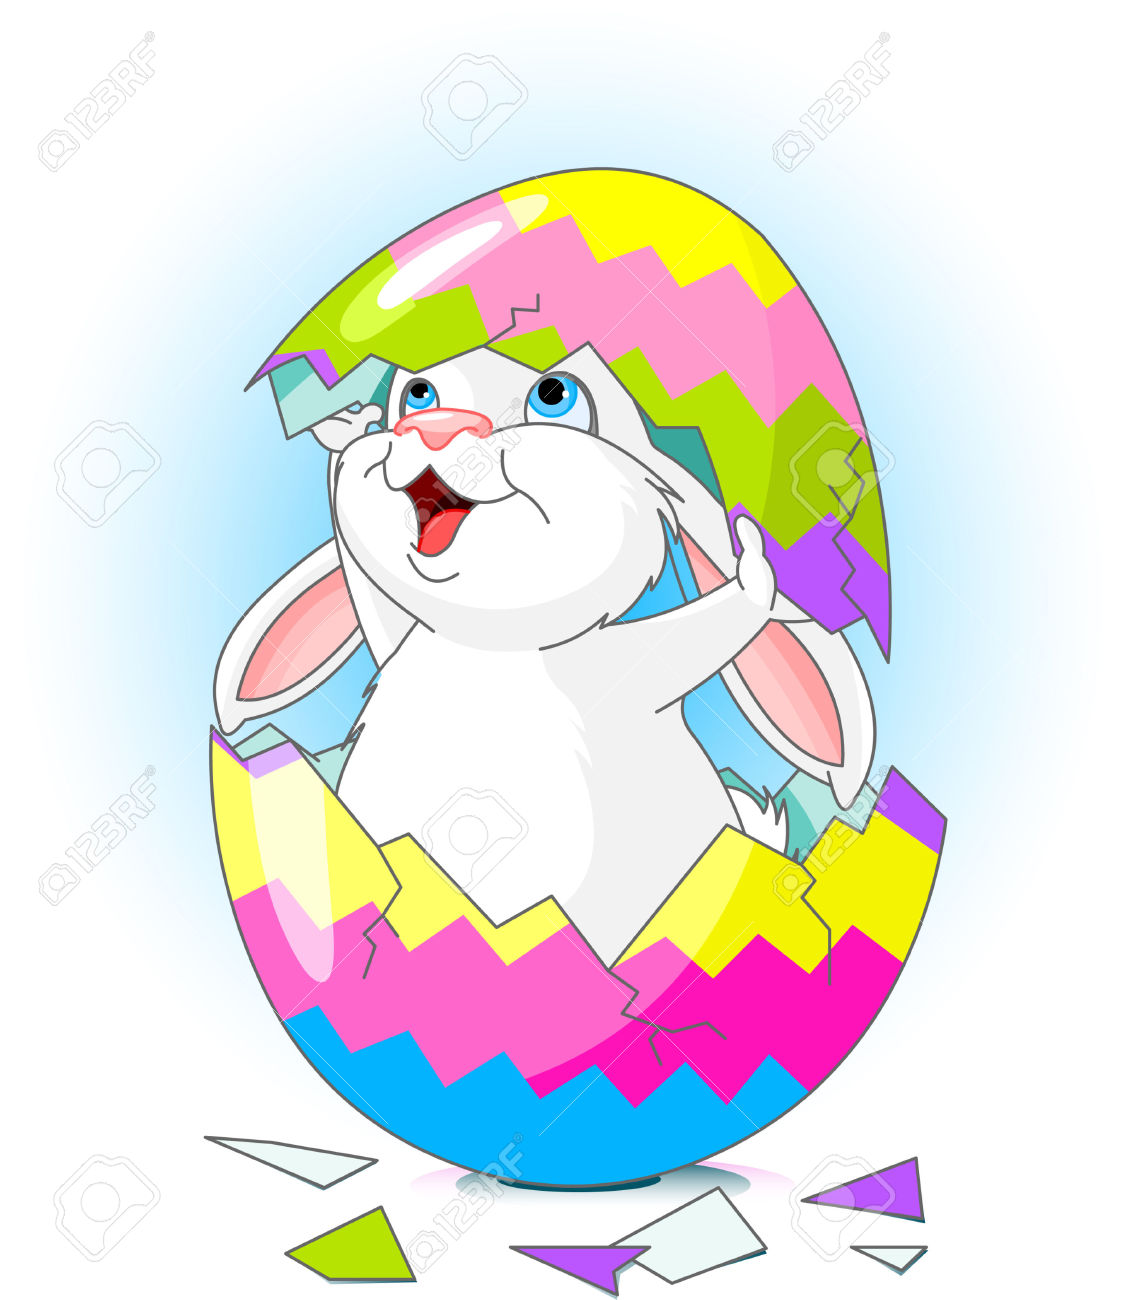 Easter bunny clipart with cracked egg graphic stock Easter bunny clipart with cracked egg - ClipartFest graphic stock